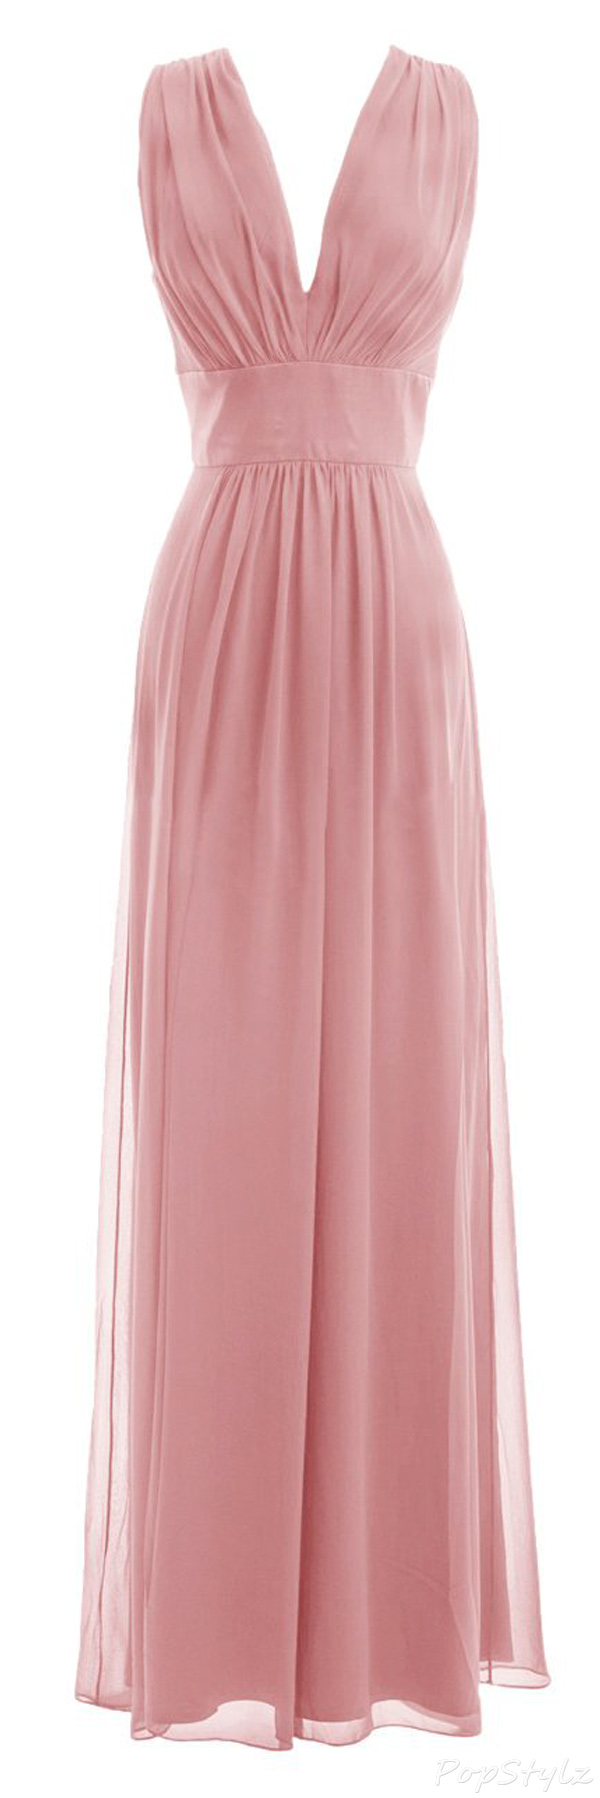 Diyouth Long Column Chiffon V-neck Formal Gown